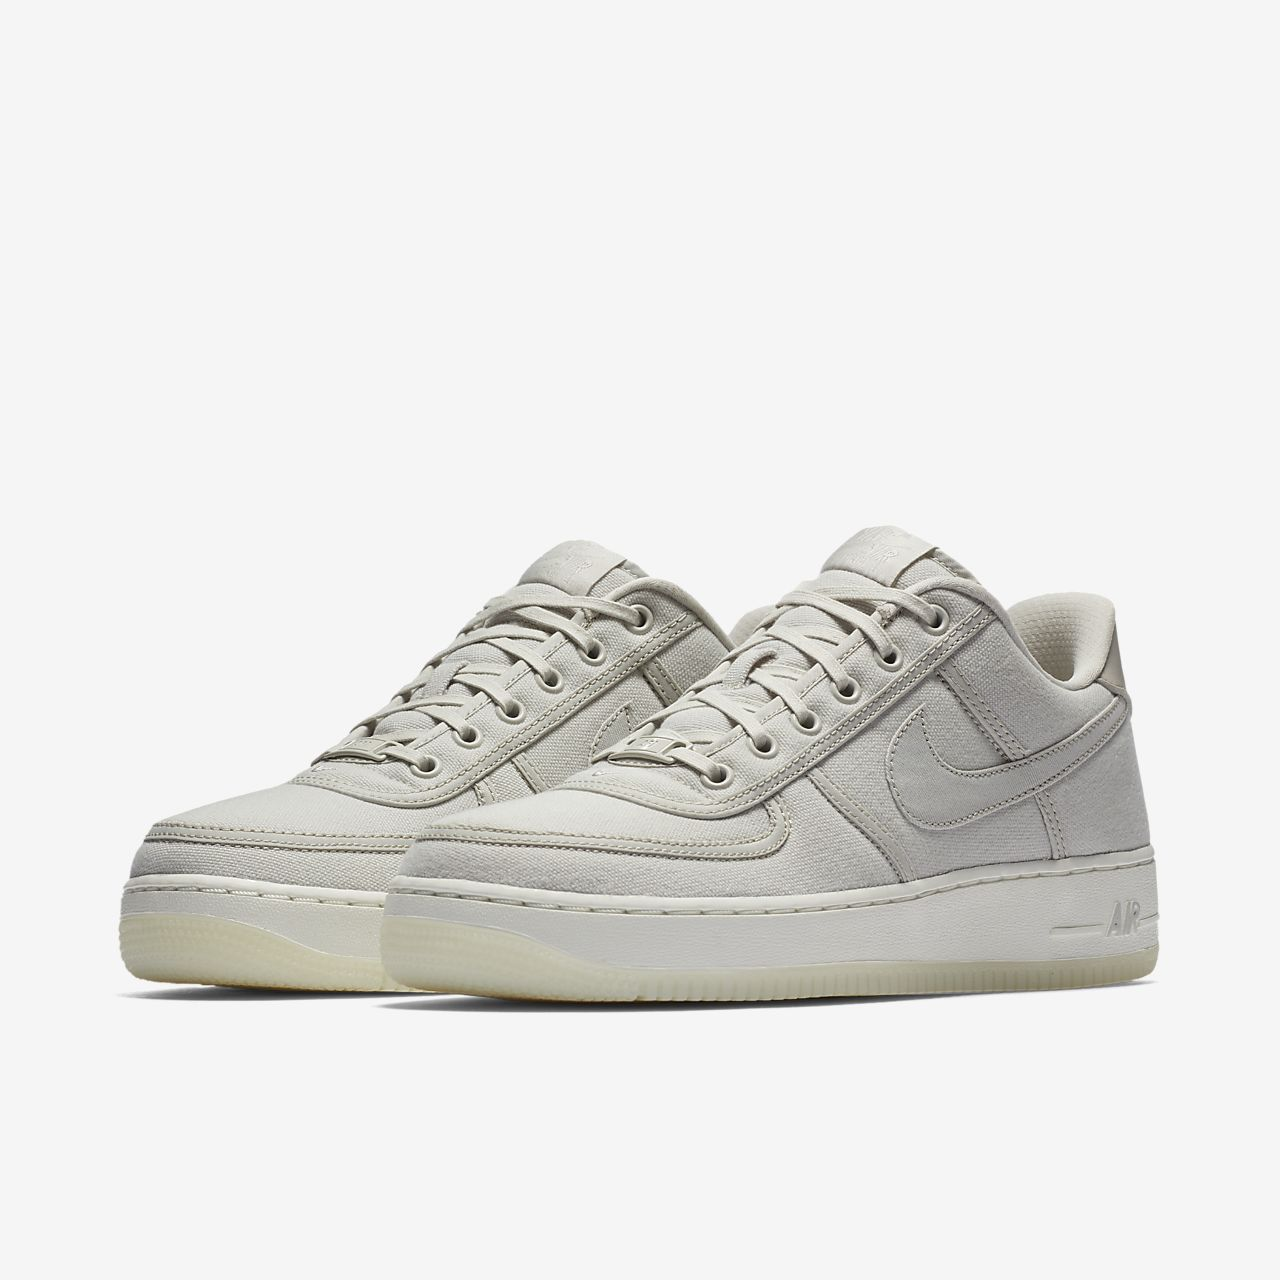 Nike Low Force Chaussure Retro Air 1 Pour Qs Homme wn0POk